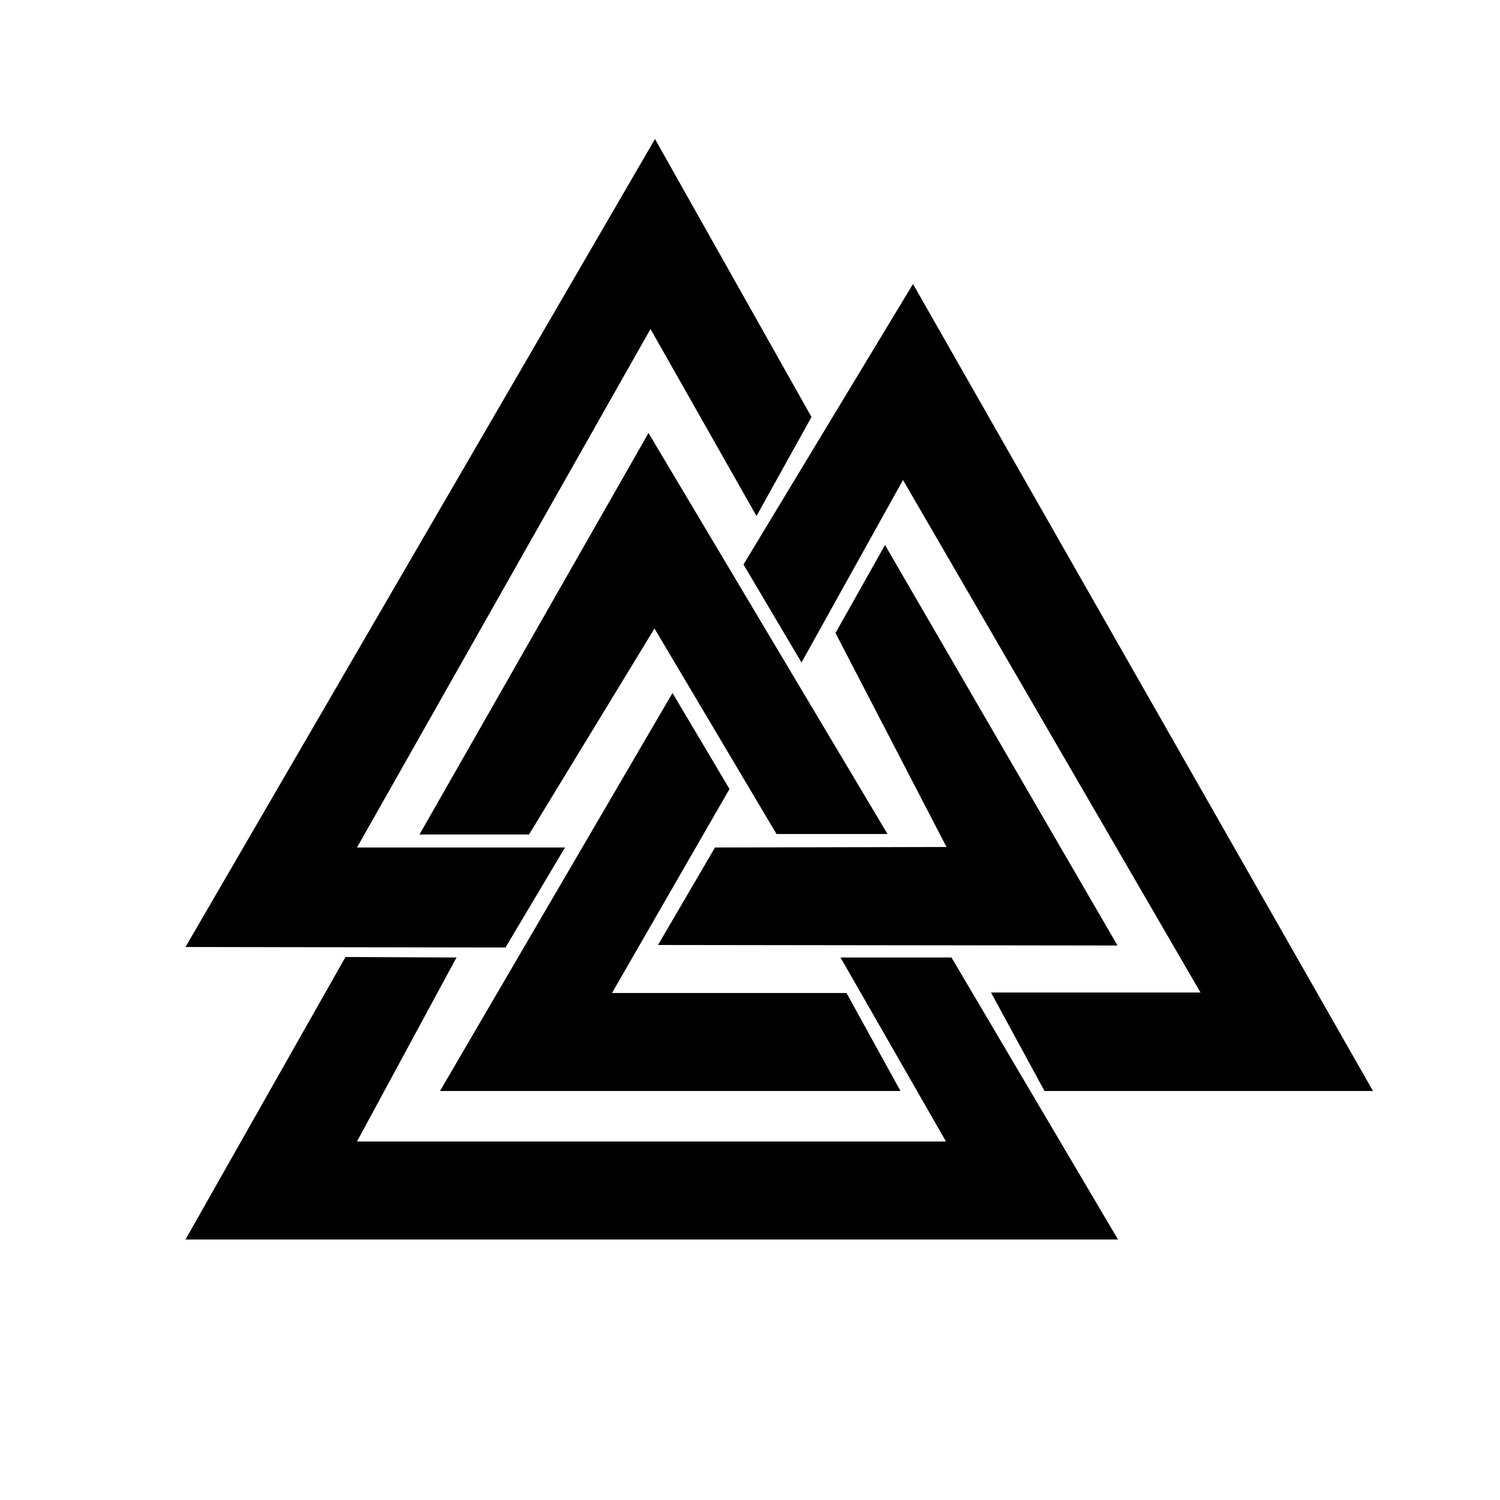 Real Rune Magick: The Valknut - a symbol of sacrifice